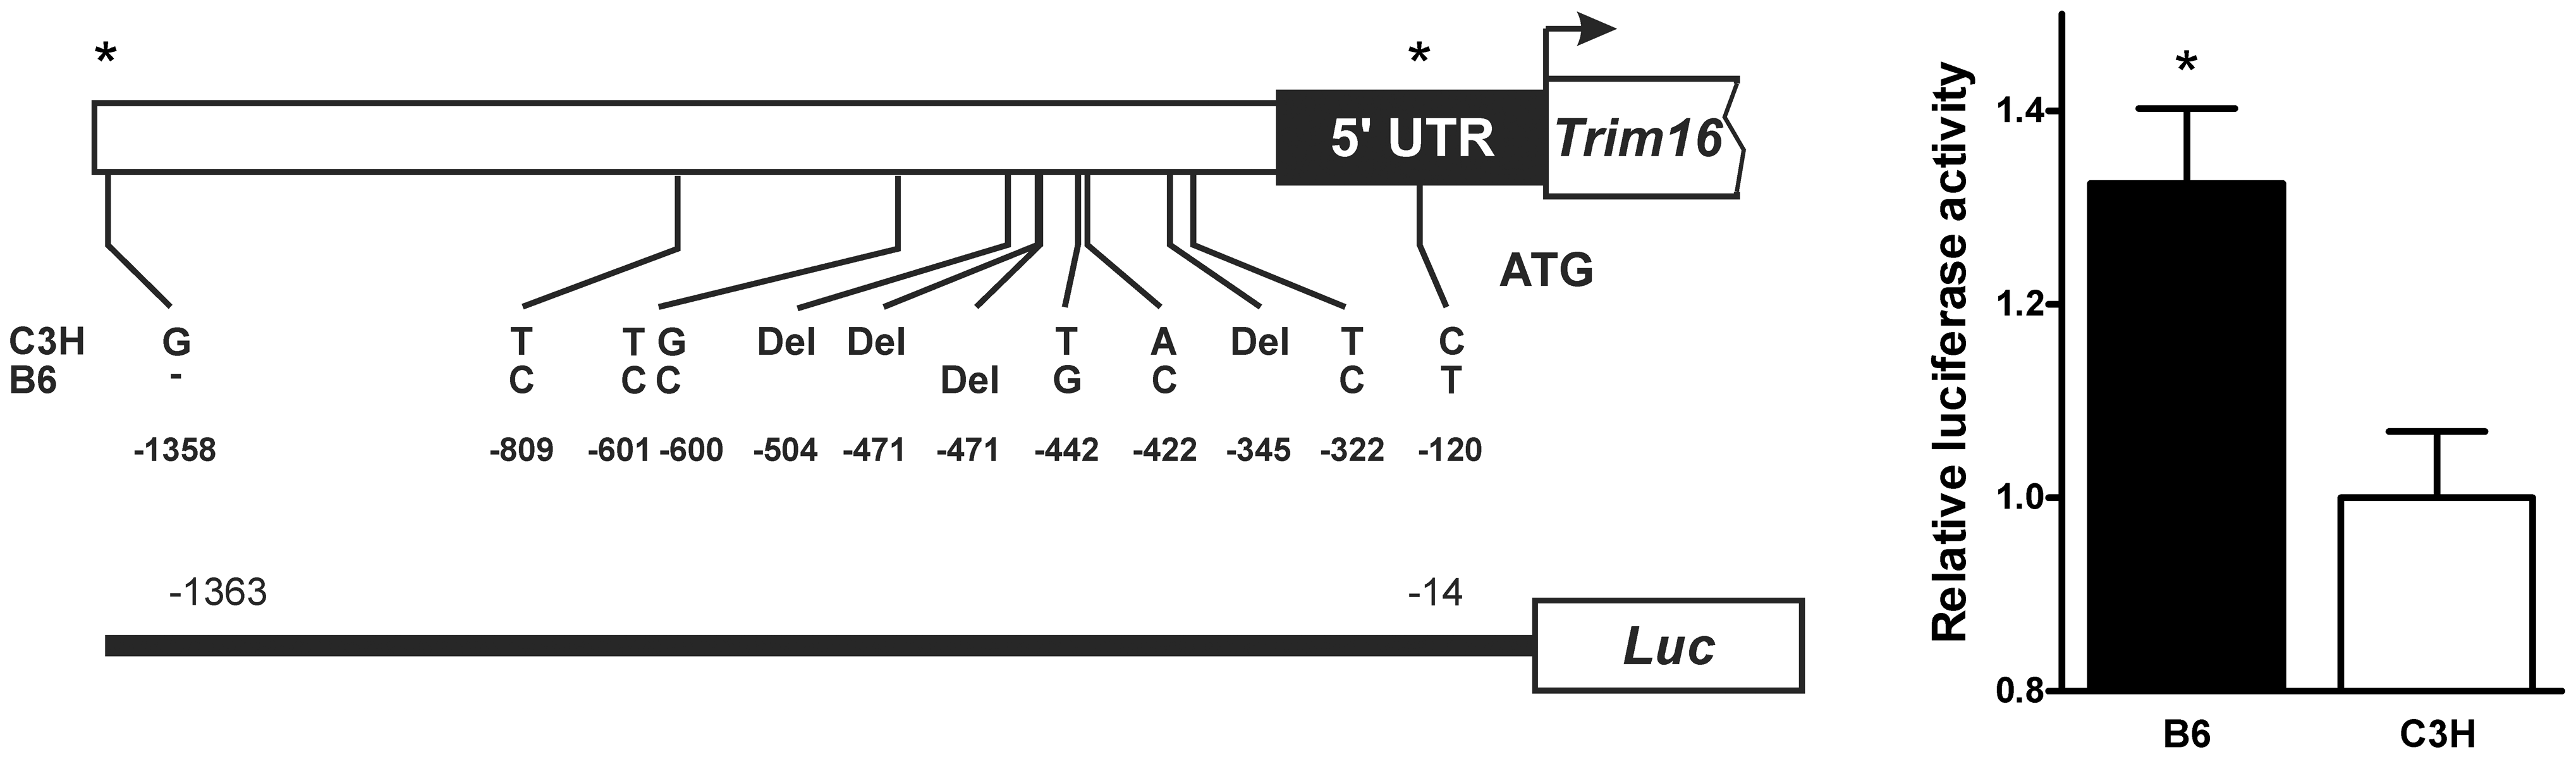 B6 and C3H <i>Trim16</i> promoter sequence variation alters transcription.